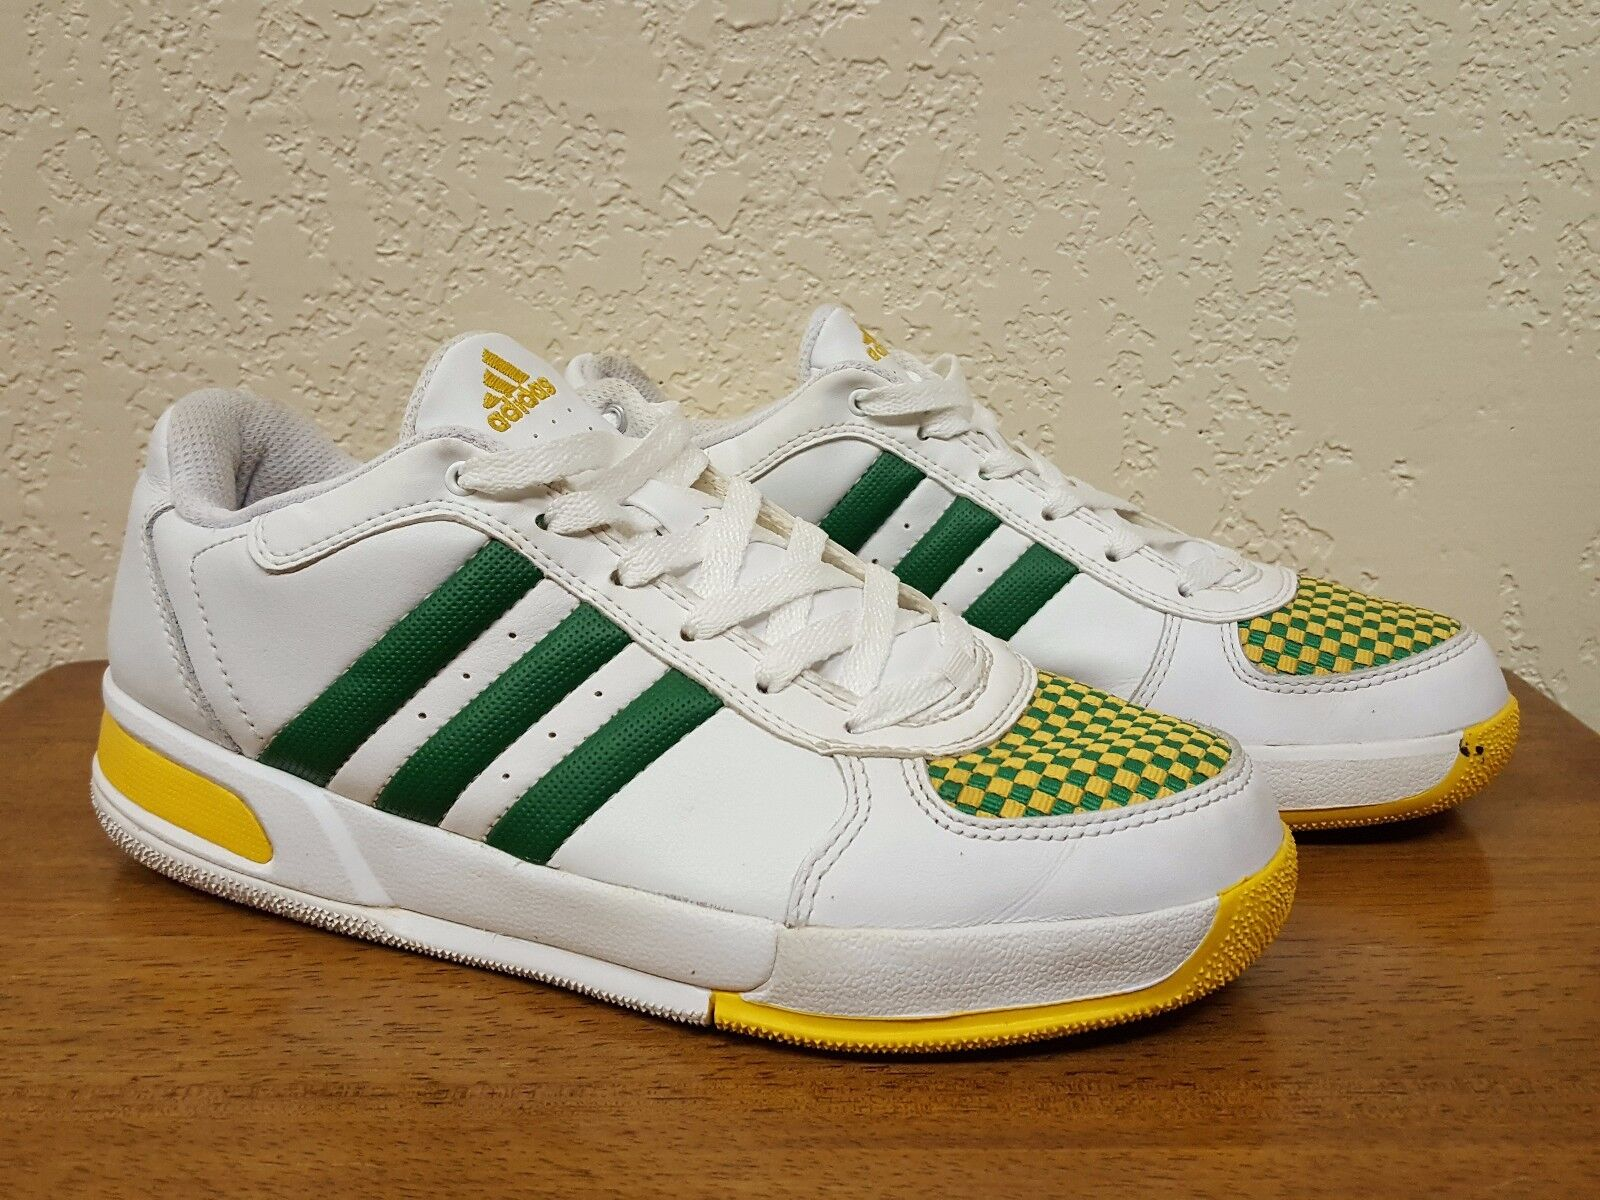 Mens ADIDAS Green Yellow Striped Checkered Leather Casual Athletic shoes 7.5